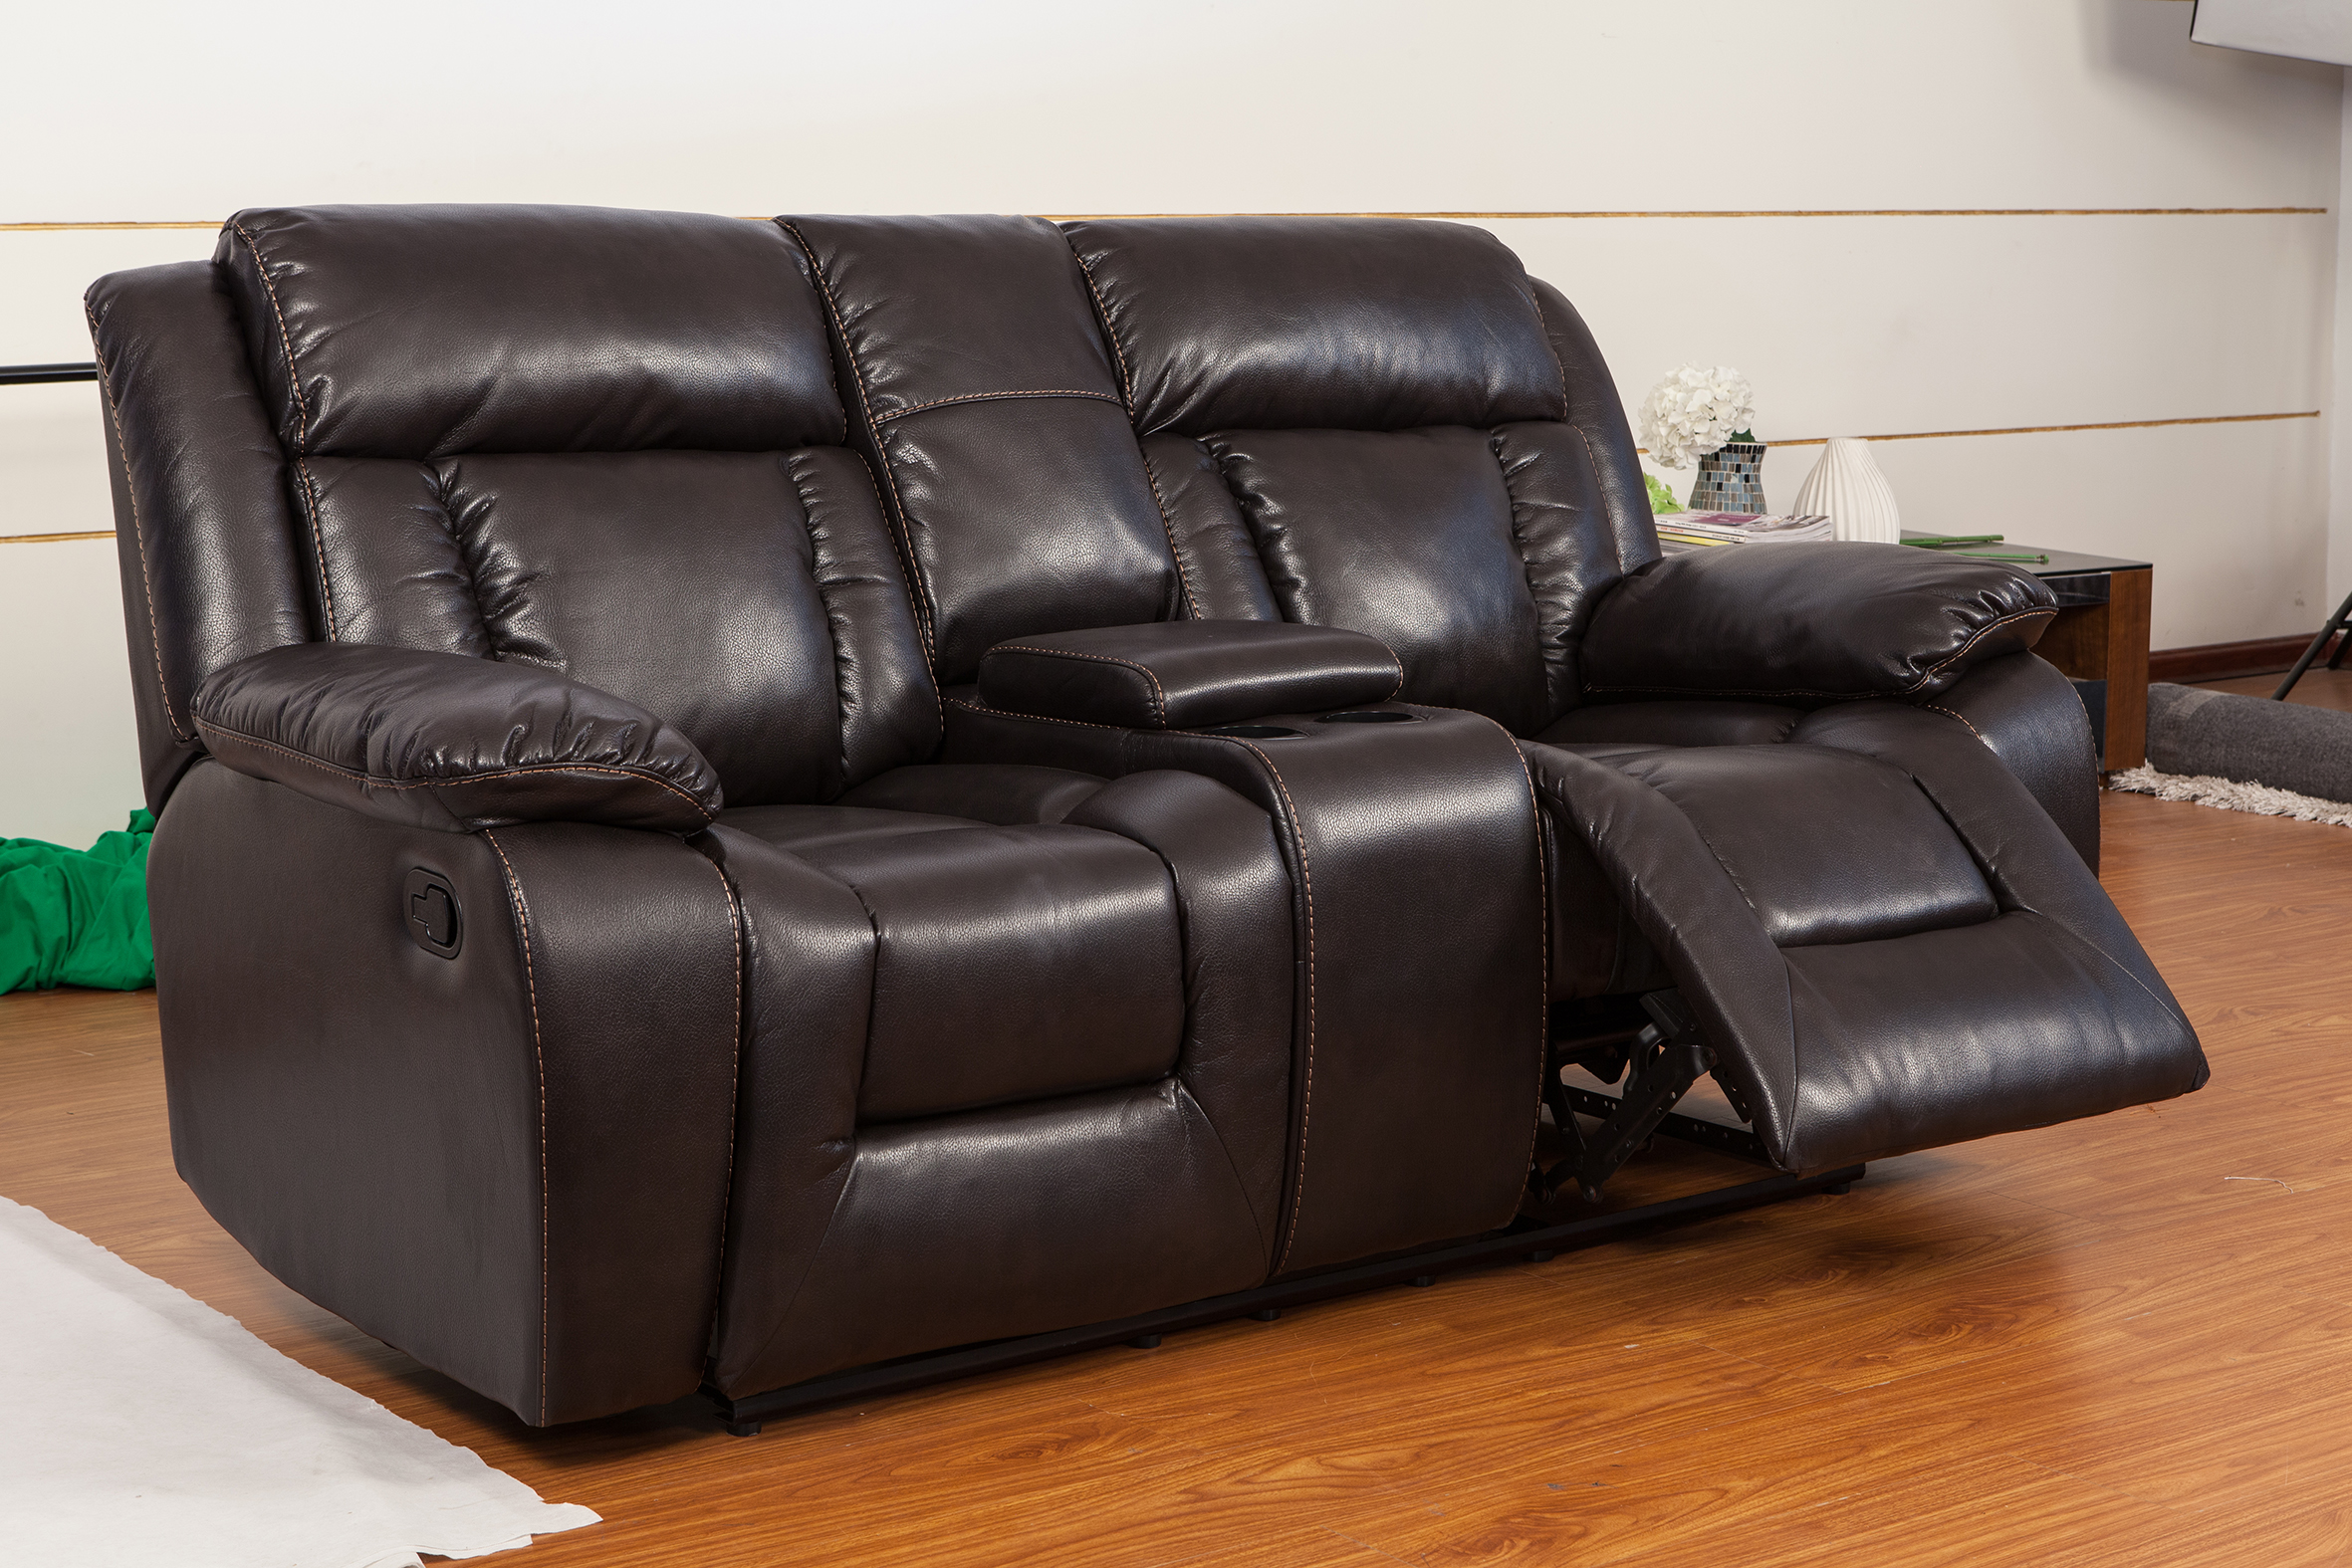 American style 2 seater modern leather loveseat with cup holder